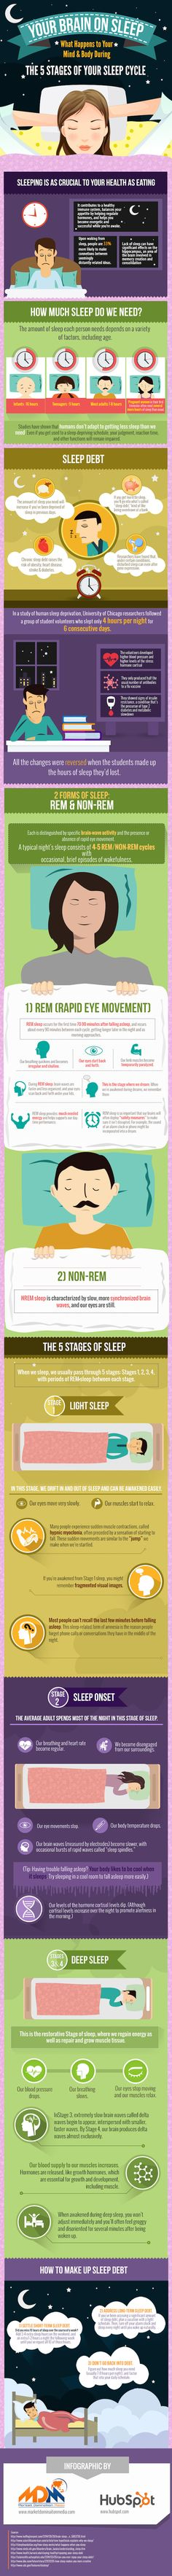 2015-08-05-1438790491-3486771-YourBrainonSleepThe5StagesofYourSleepCycle.jpg